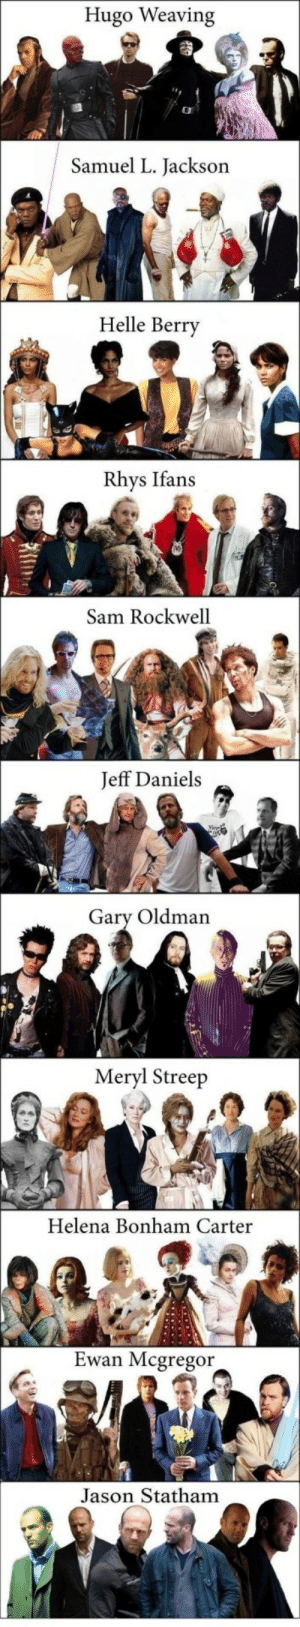 Varying roles of Hollywood Actors via /r/funny https://ift.tt/2JCrEy1: Hugo Weaving  Samuel L. Jackson  Helle Berry  Rhys Ifans  Sam Rockwell  Jeff Daniels  Gary Oldman  Meryl Streep  Helena Bonham Carter  Ewan Mcgregor  Jason Statham Varying roles of Hollywood Actors via /r/funny https://ift.tt/2JCrEy1